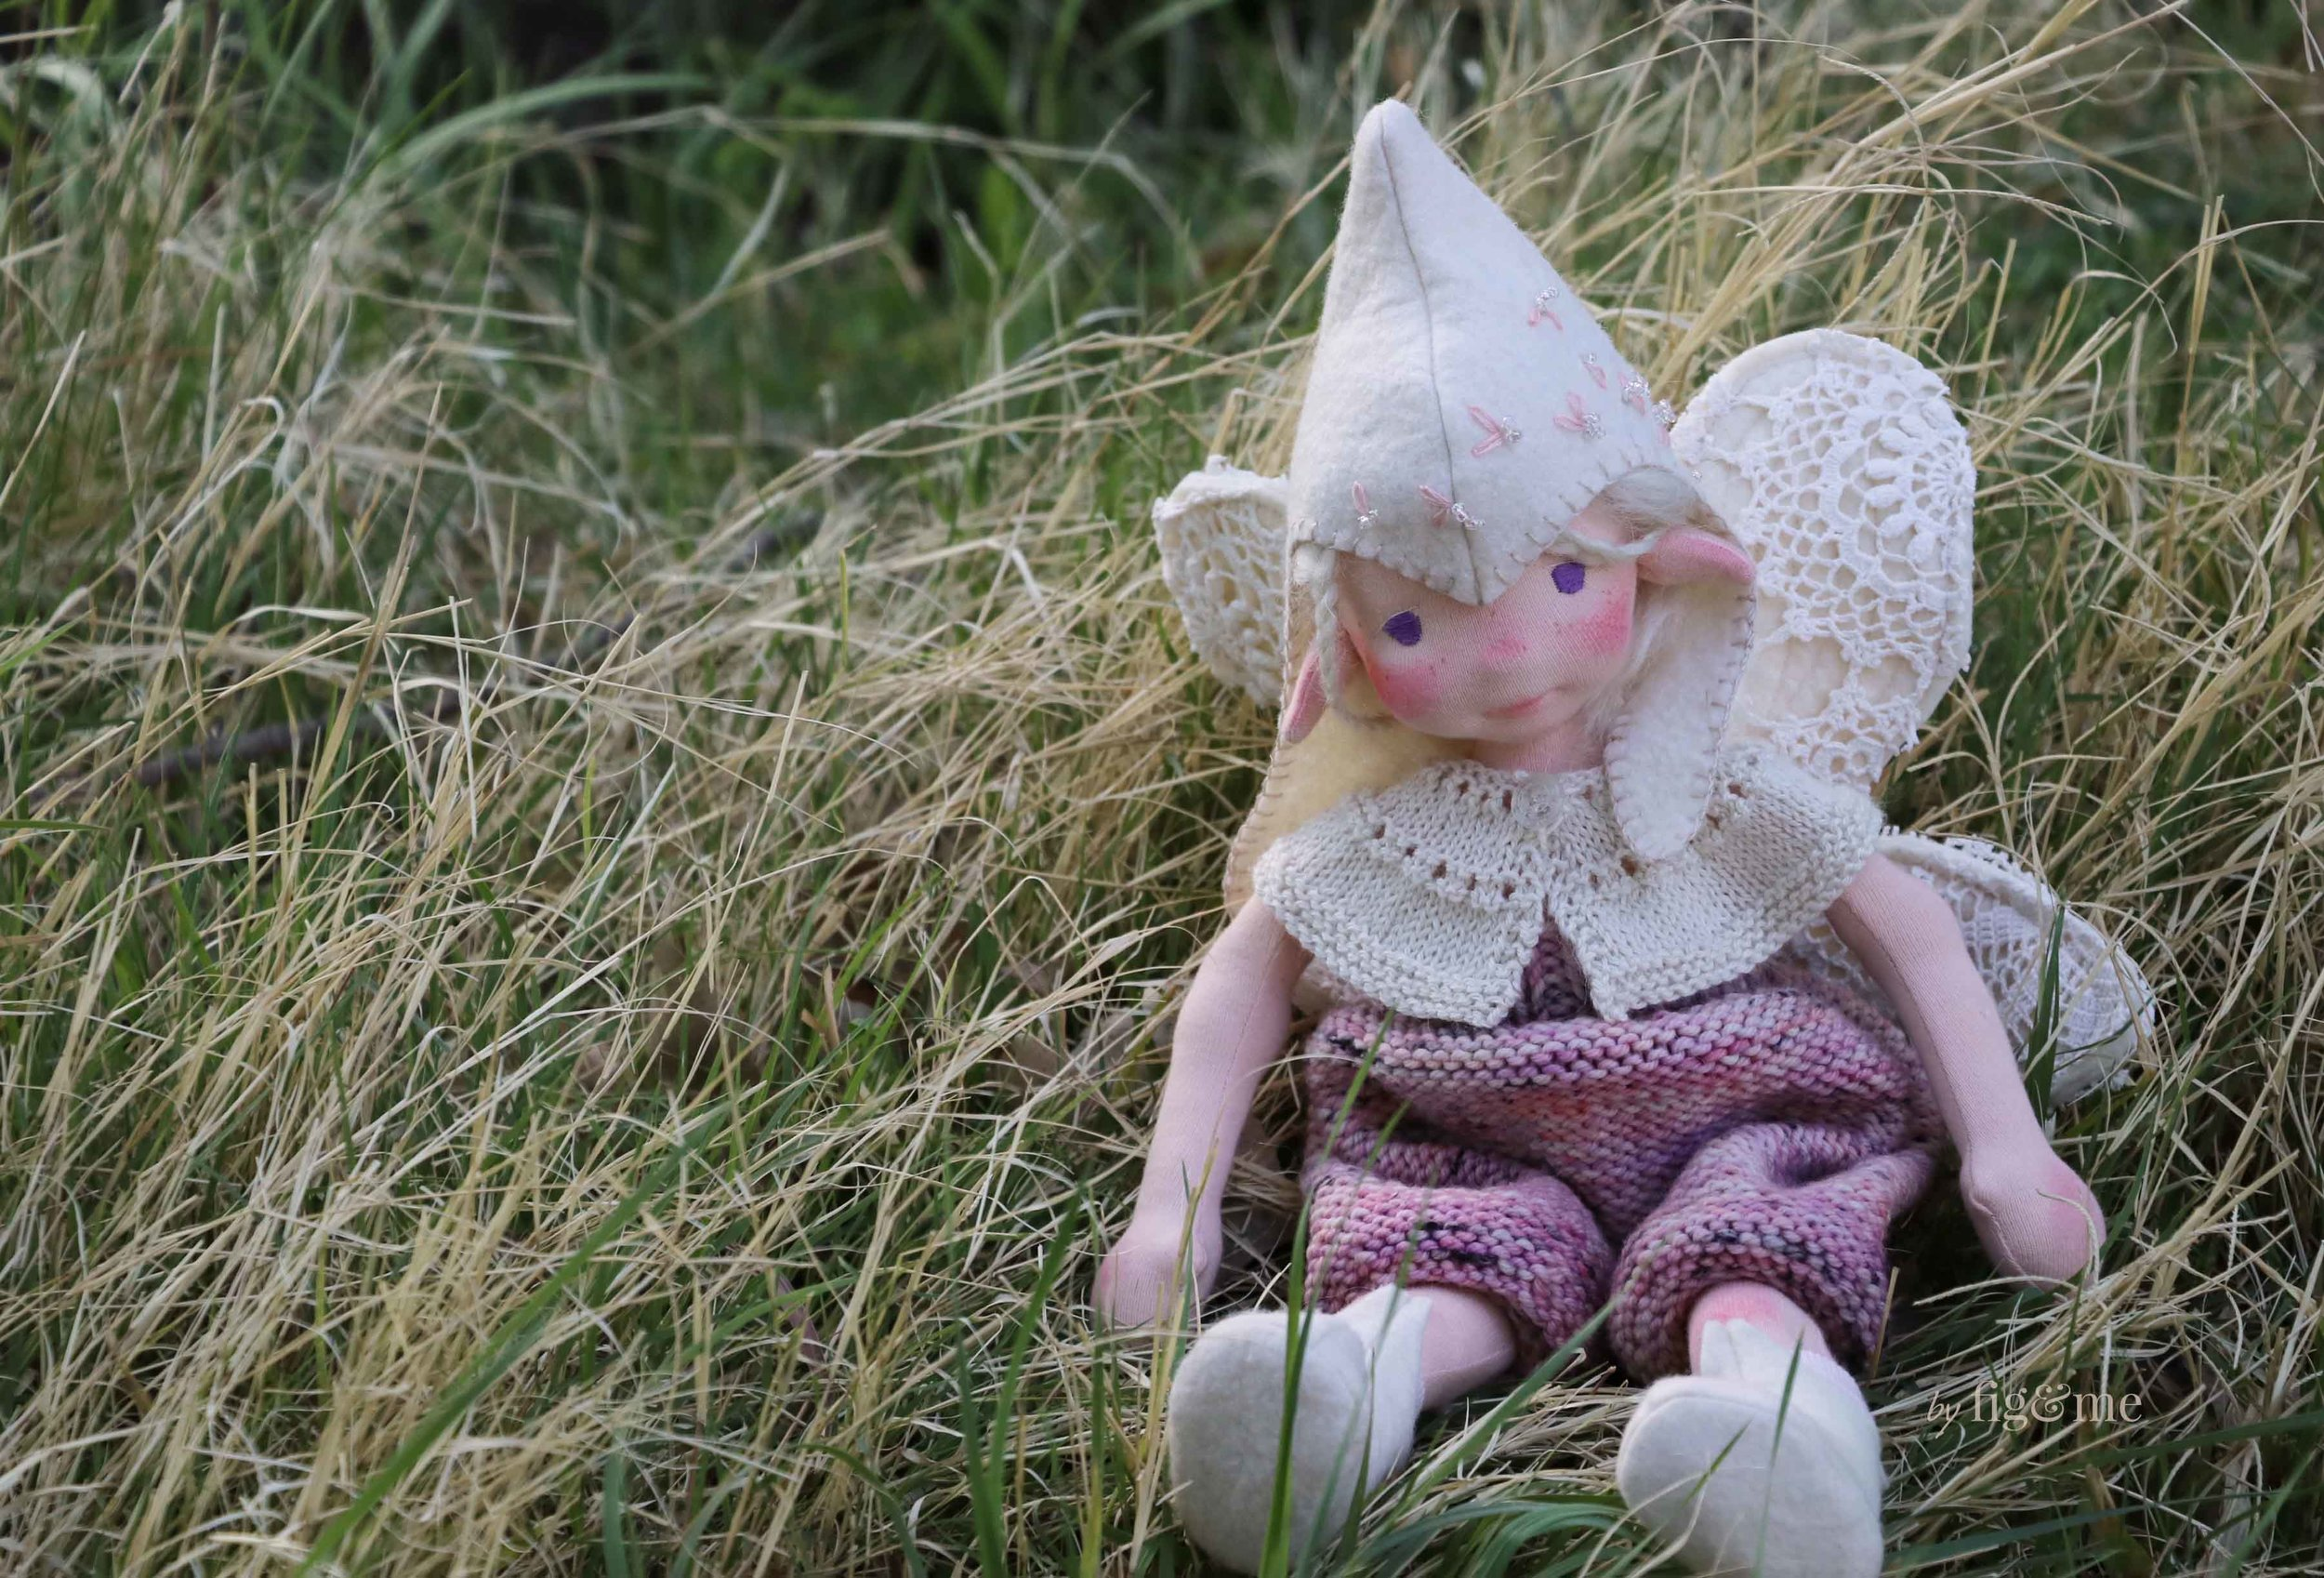 Maedhbhina, a fairy doll by Fig and Me.